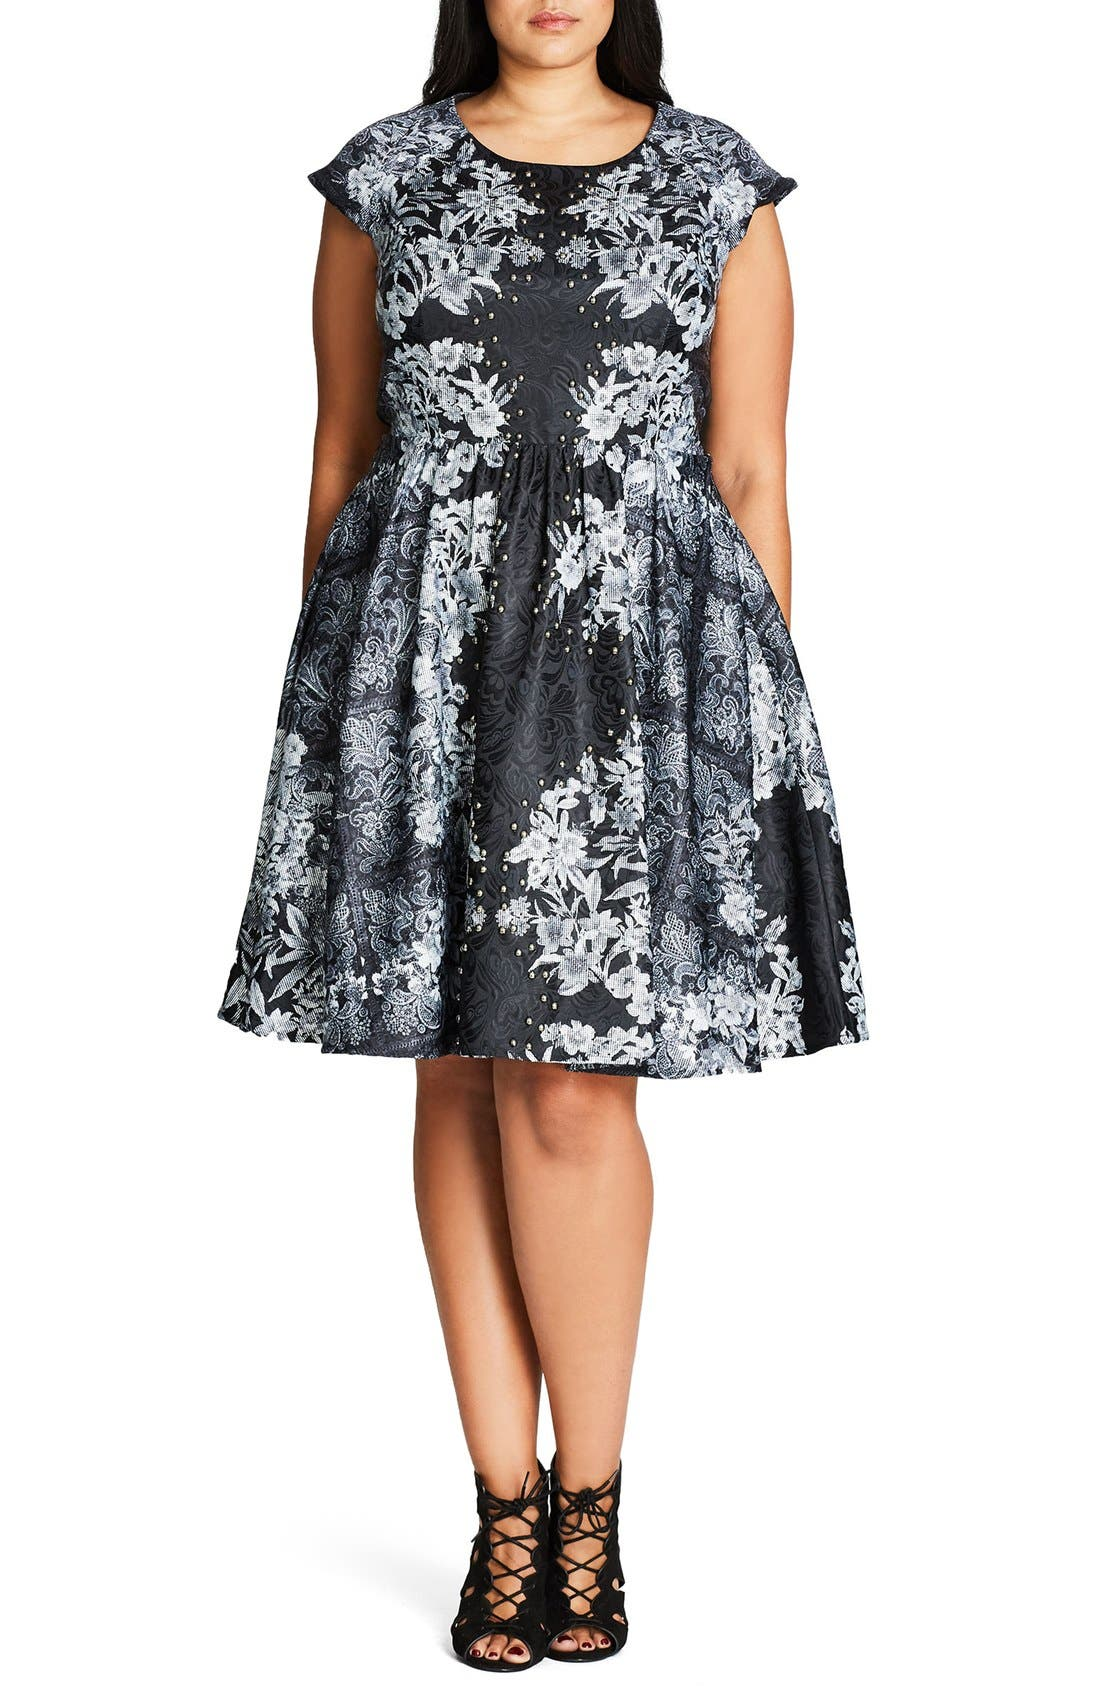 Alternate Image 1 Selected - City Chic 'Femme Royale' Fit & Flare Dress (Plus Size)